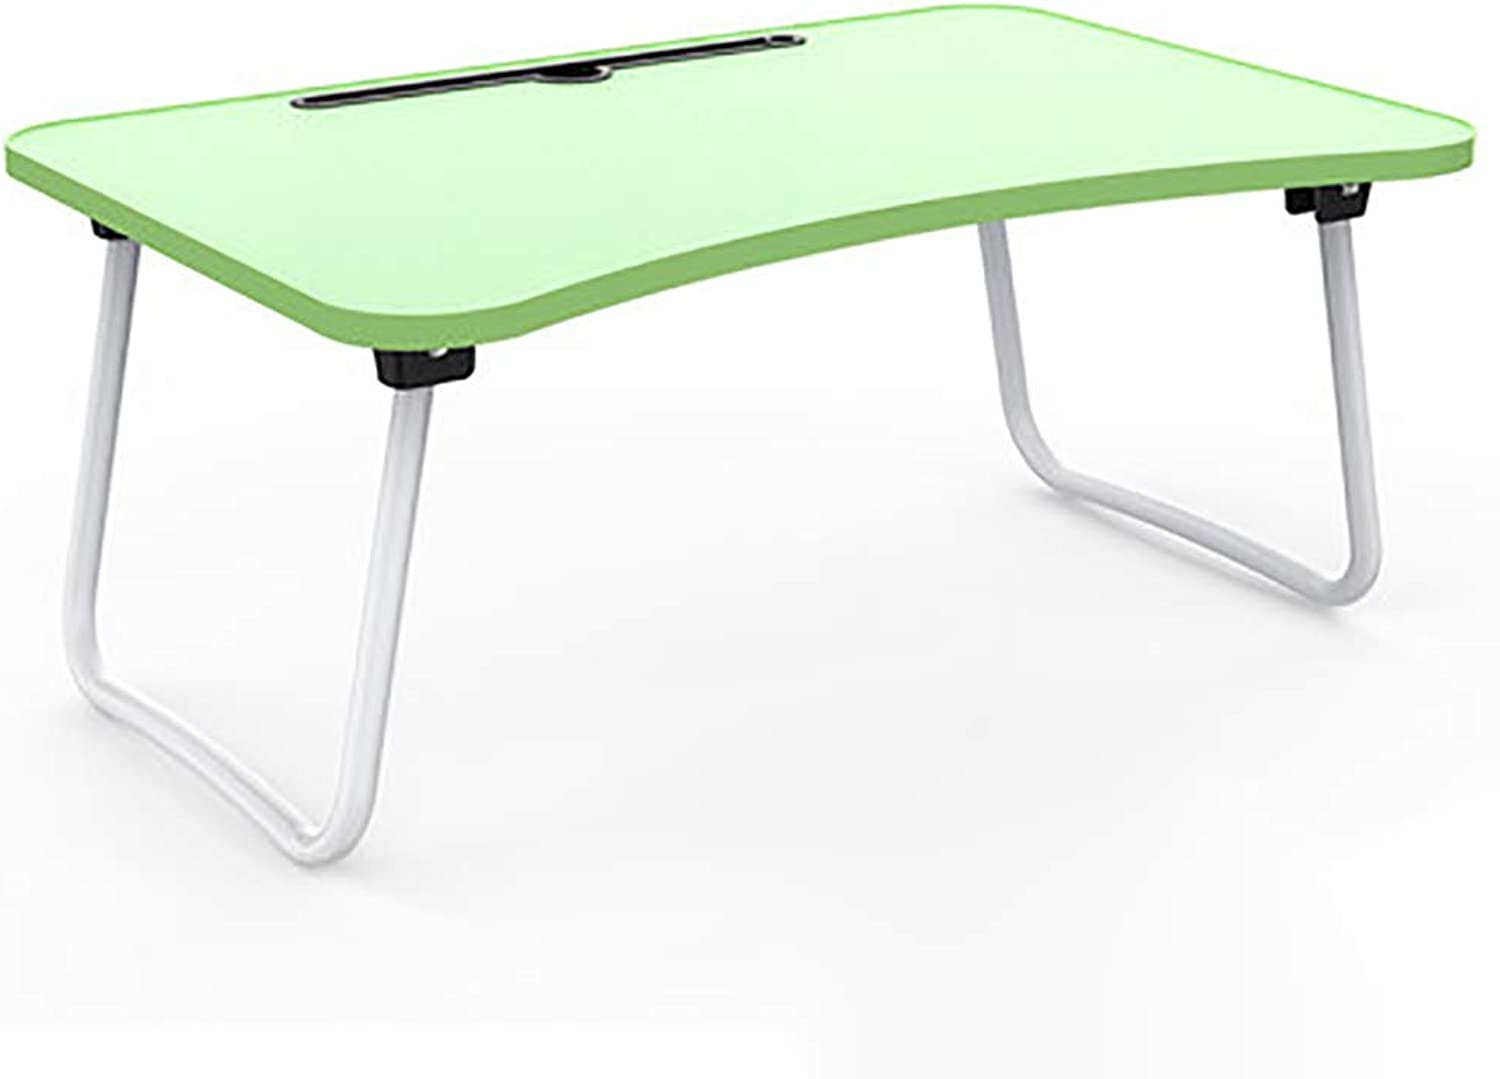 Xiao Jian Folding Table - Laptop Desk Desk Bed Small Table Folding Table Bed Table Lazy Simple Home Student Dormitory Table - Size  60x40x28cm Folding Table (color   Green, Size   B)